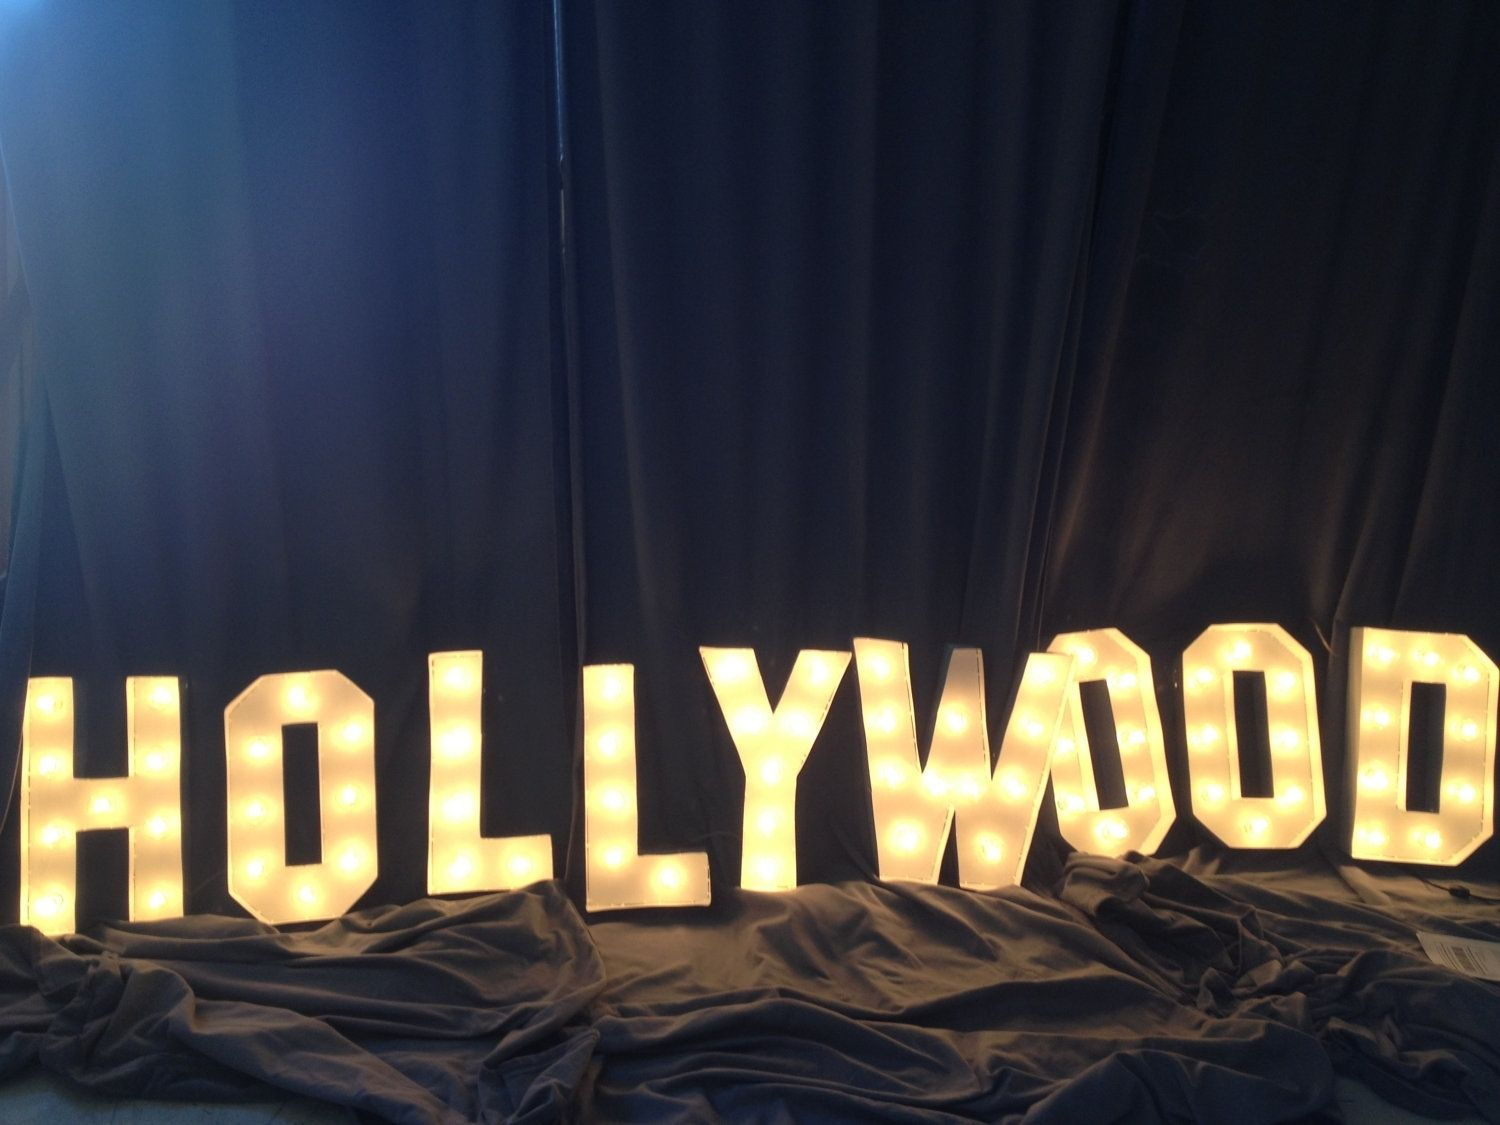 custom made hollywood sign marquee letter 18 inch tall channel letters